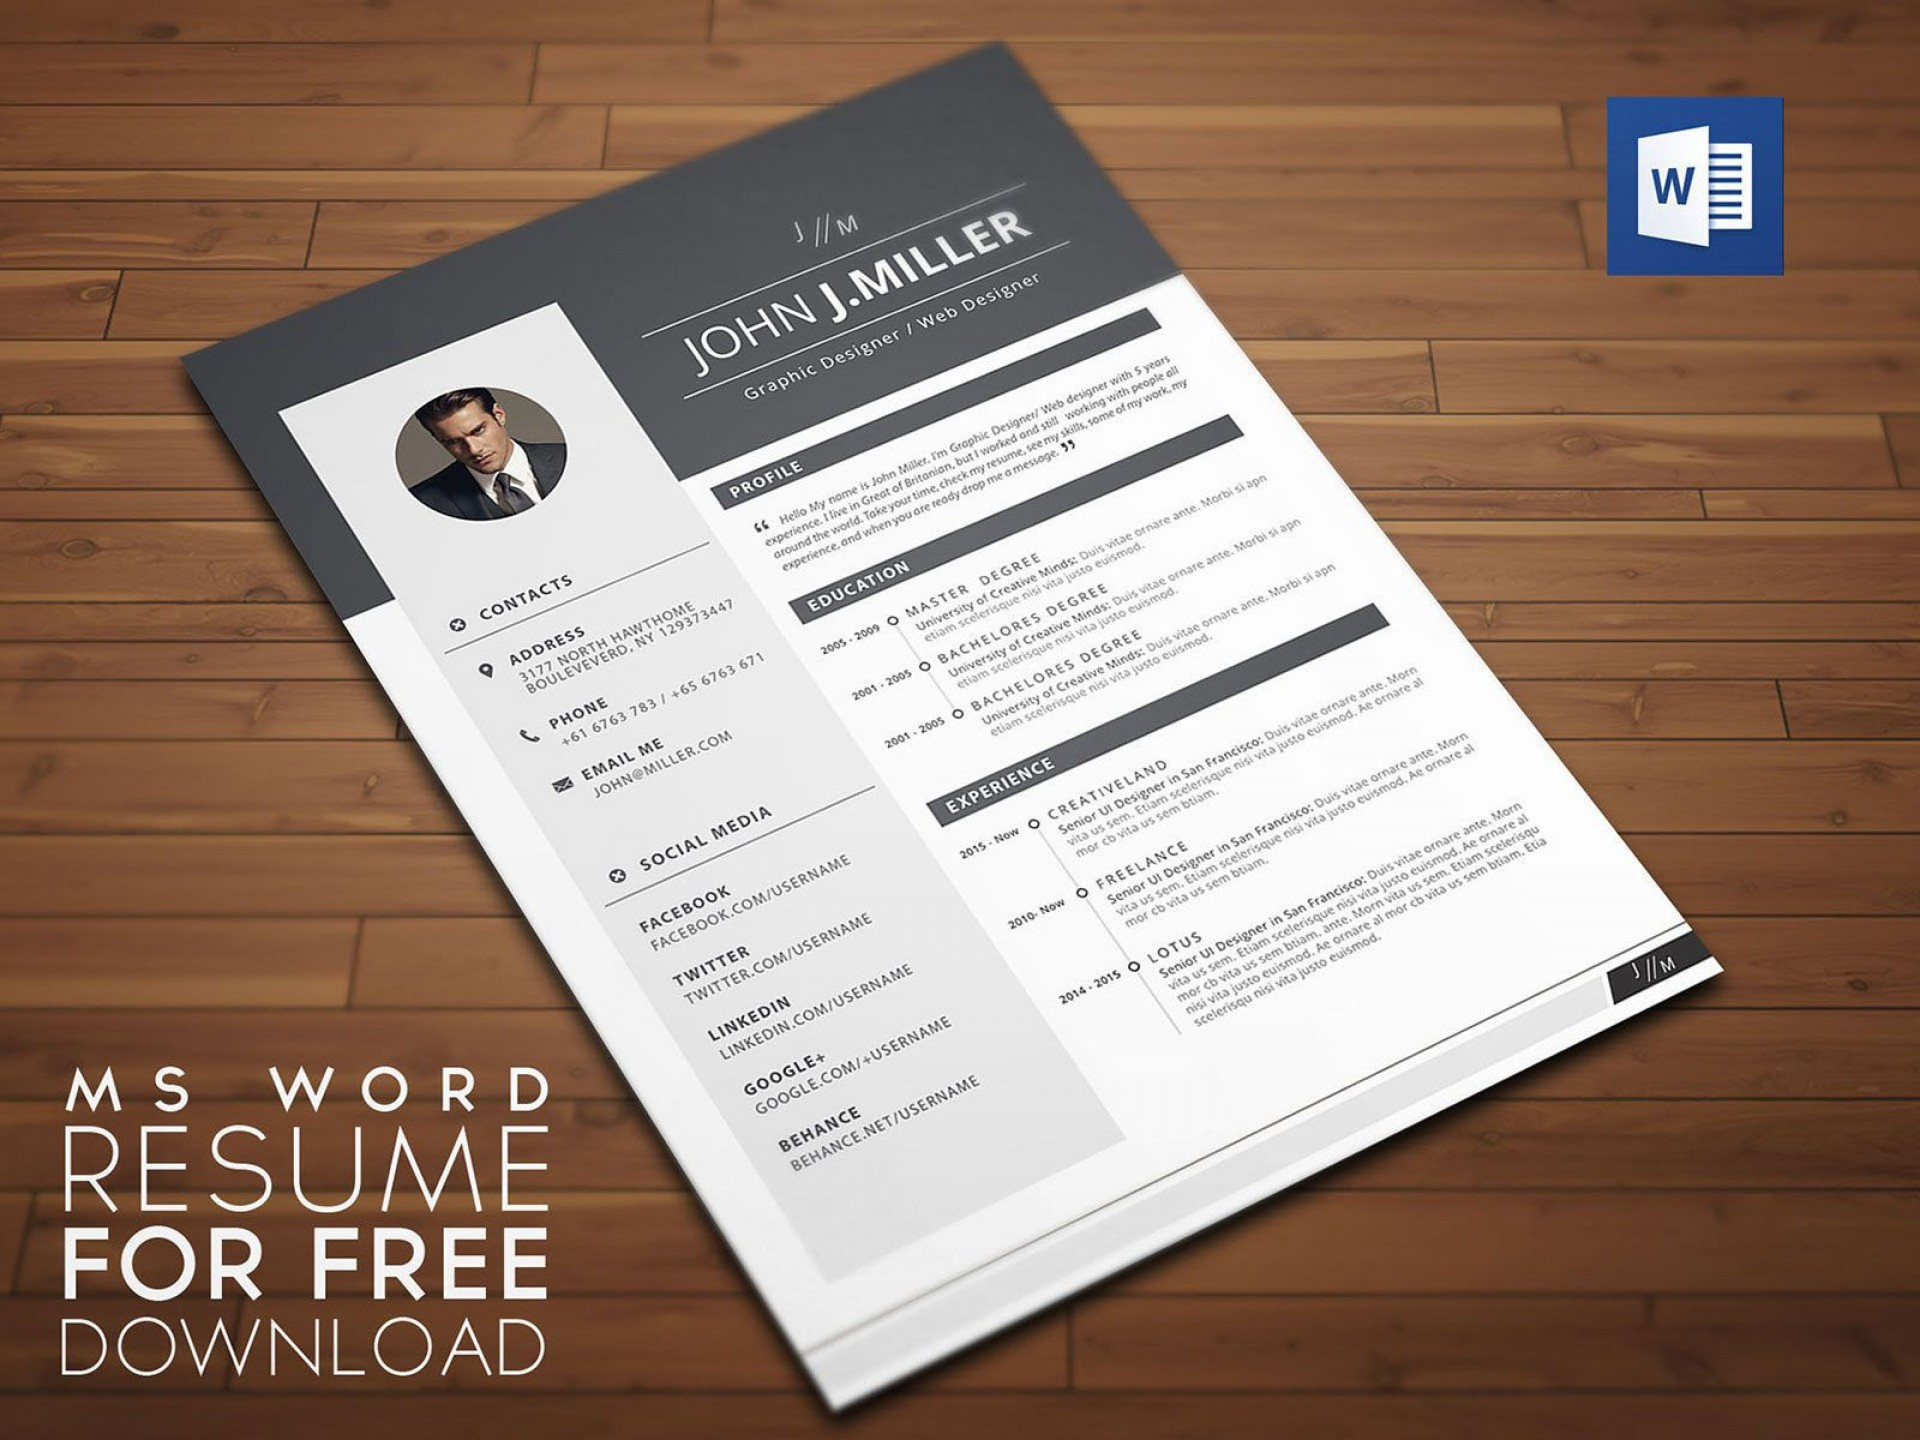 004 Phenomenal Download Resume Template Free Microsoft Word High Definition  2010 Attractive M Simple For1920